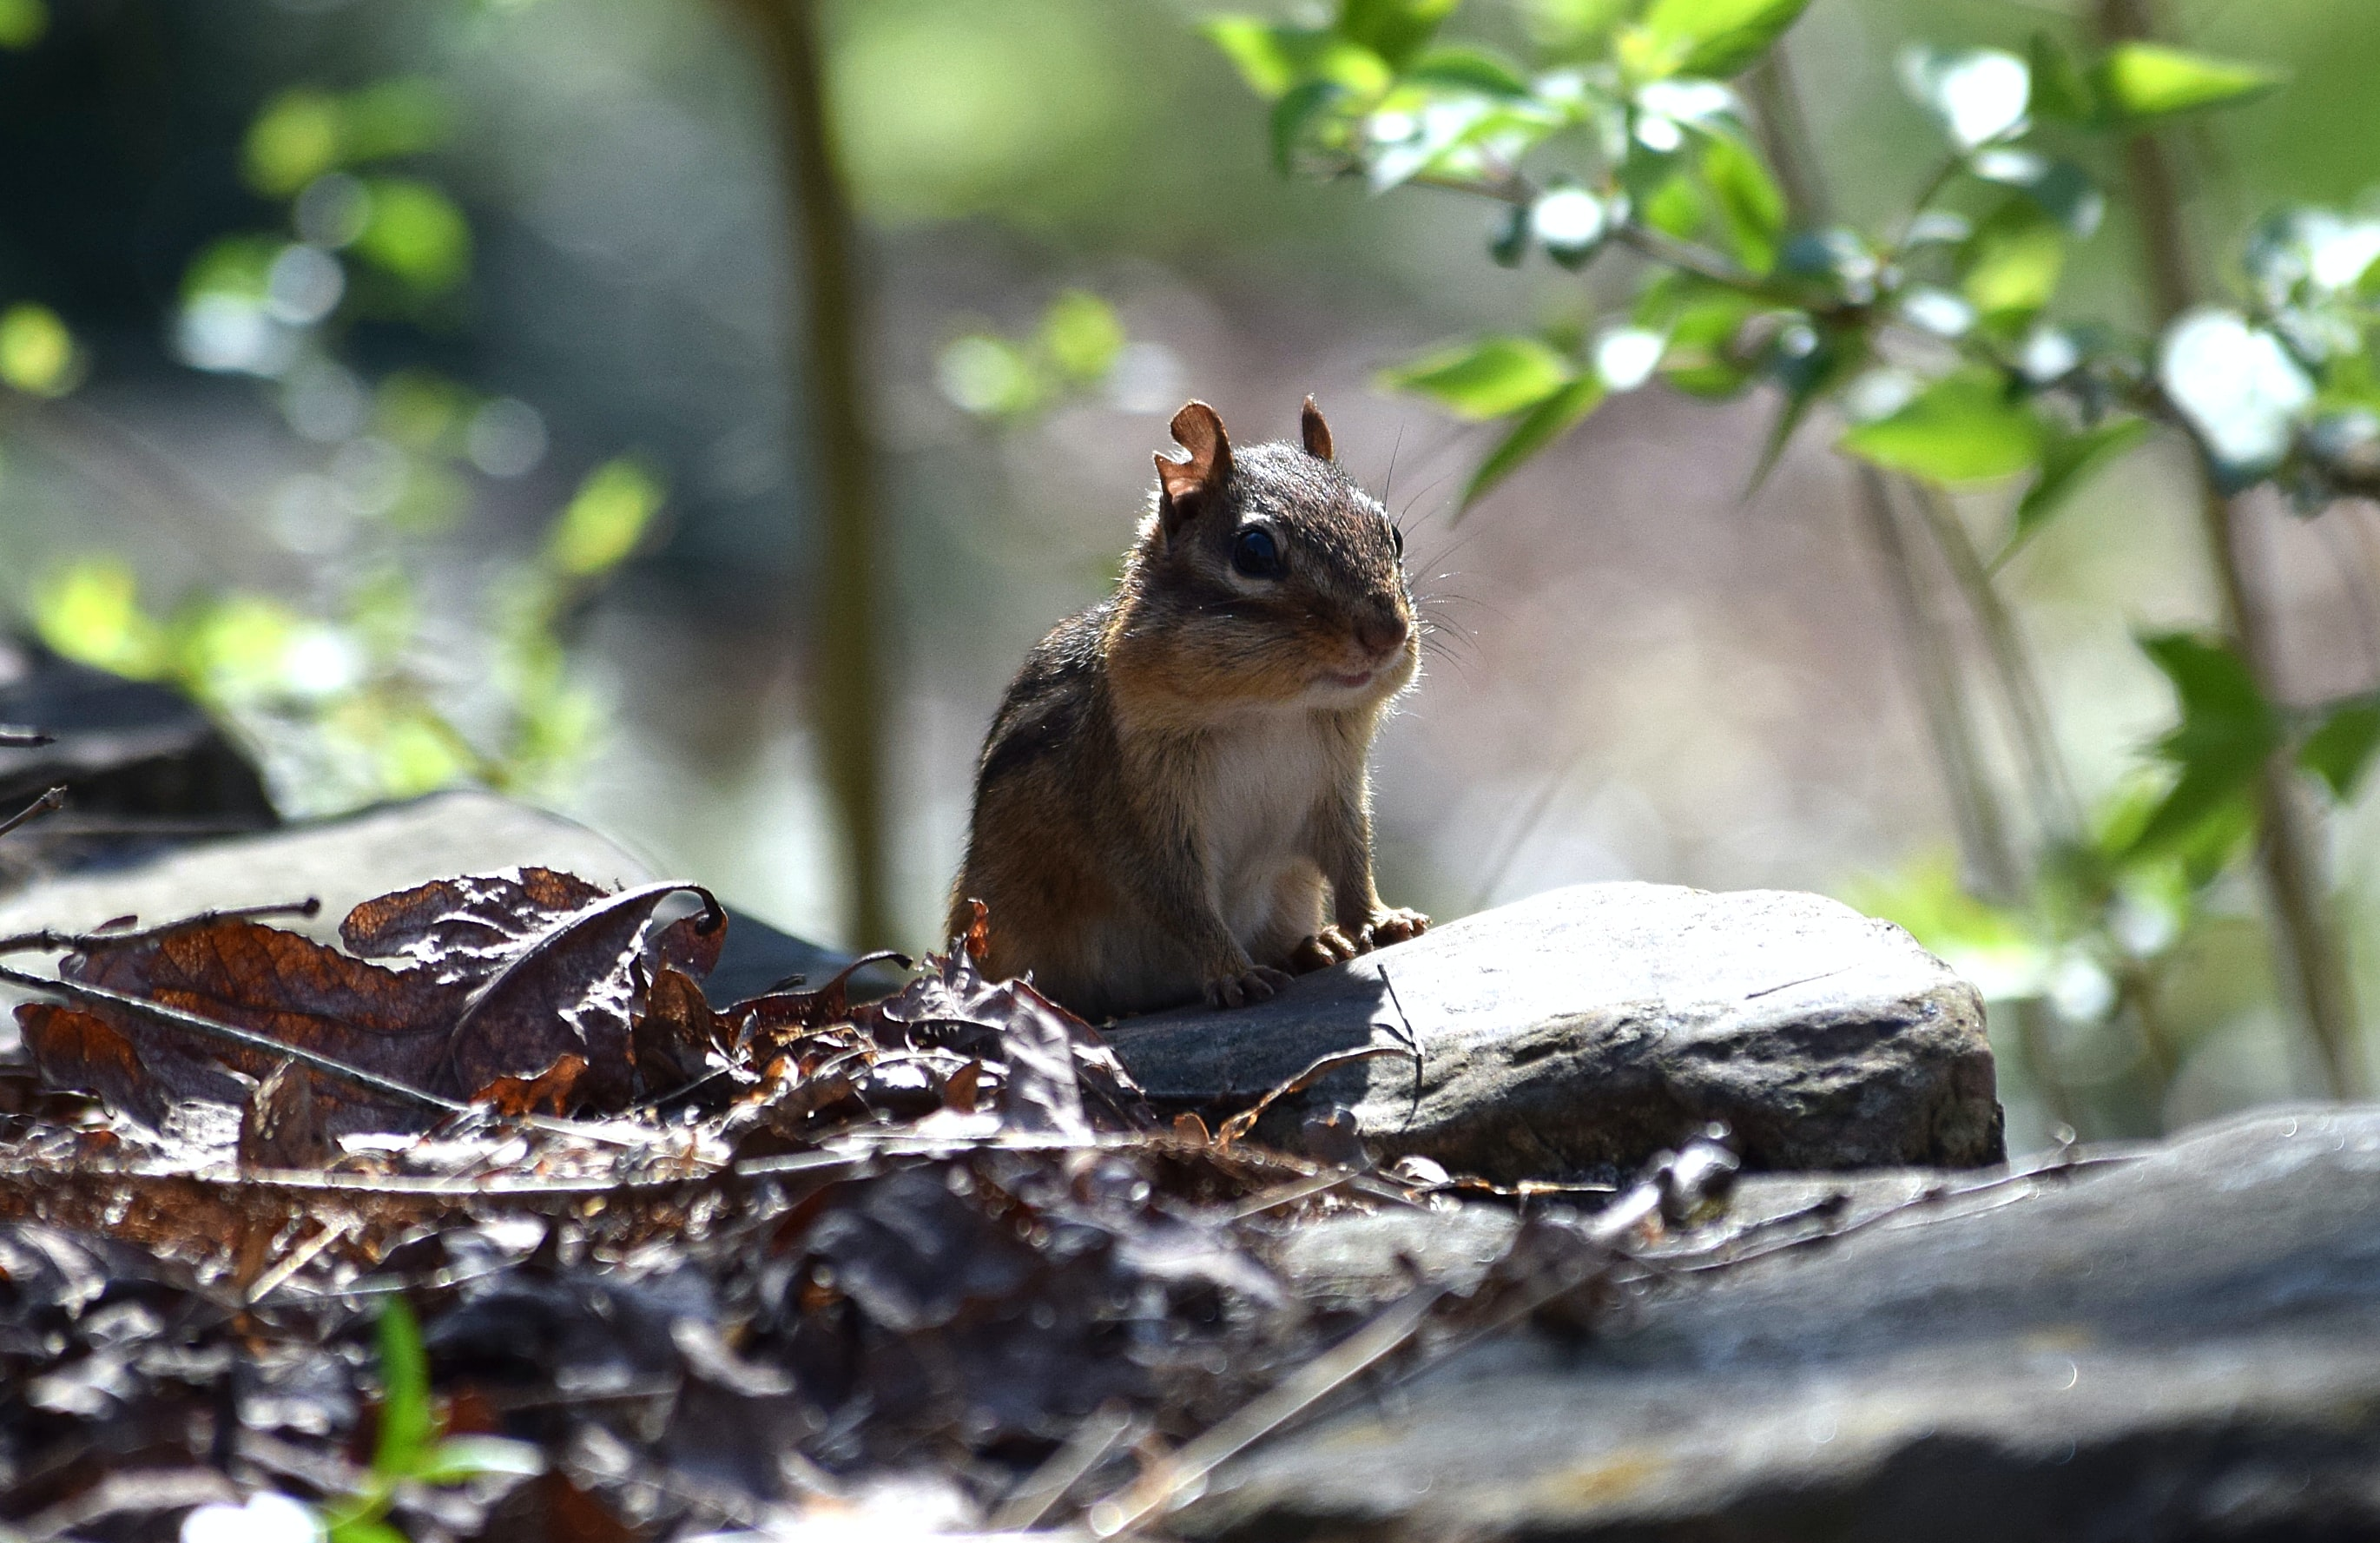 closeup photo of brown squirrel